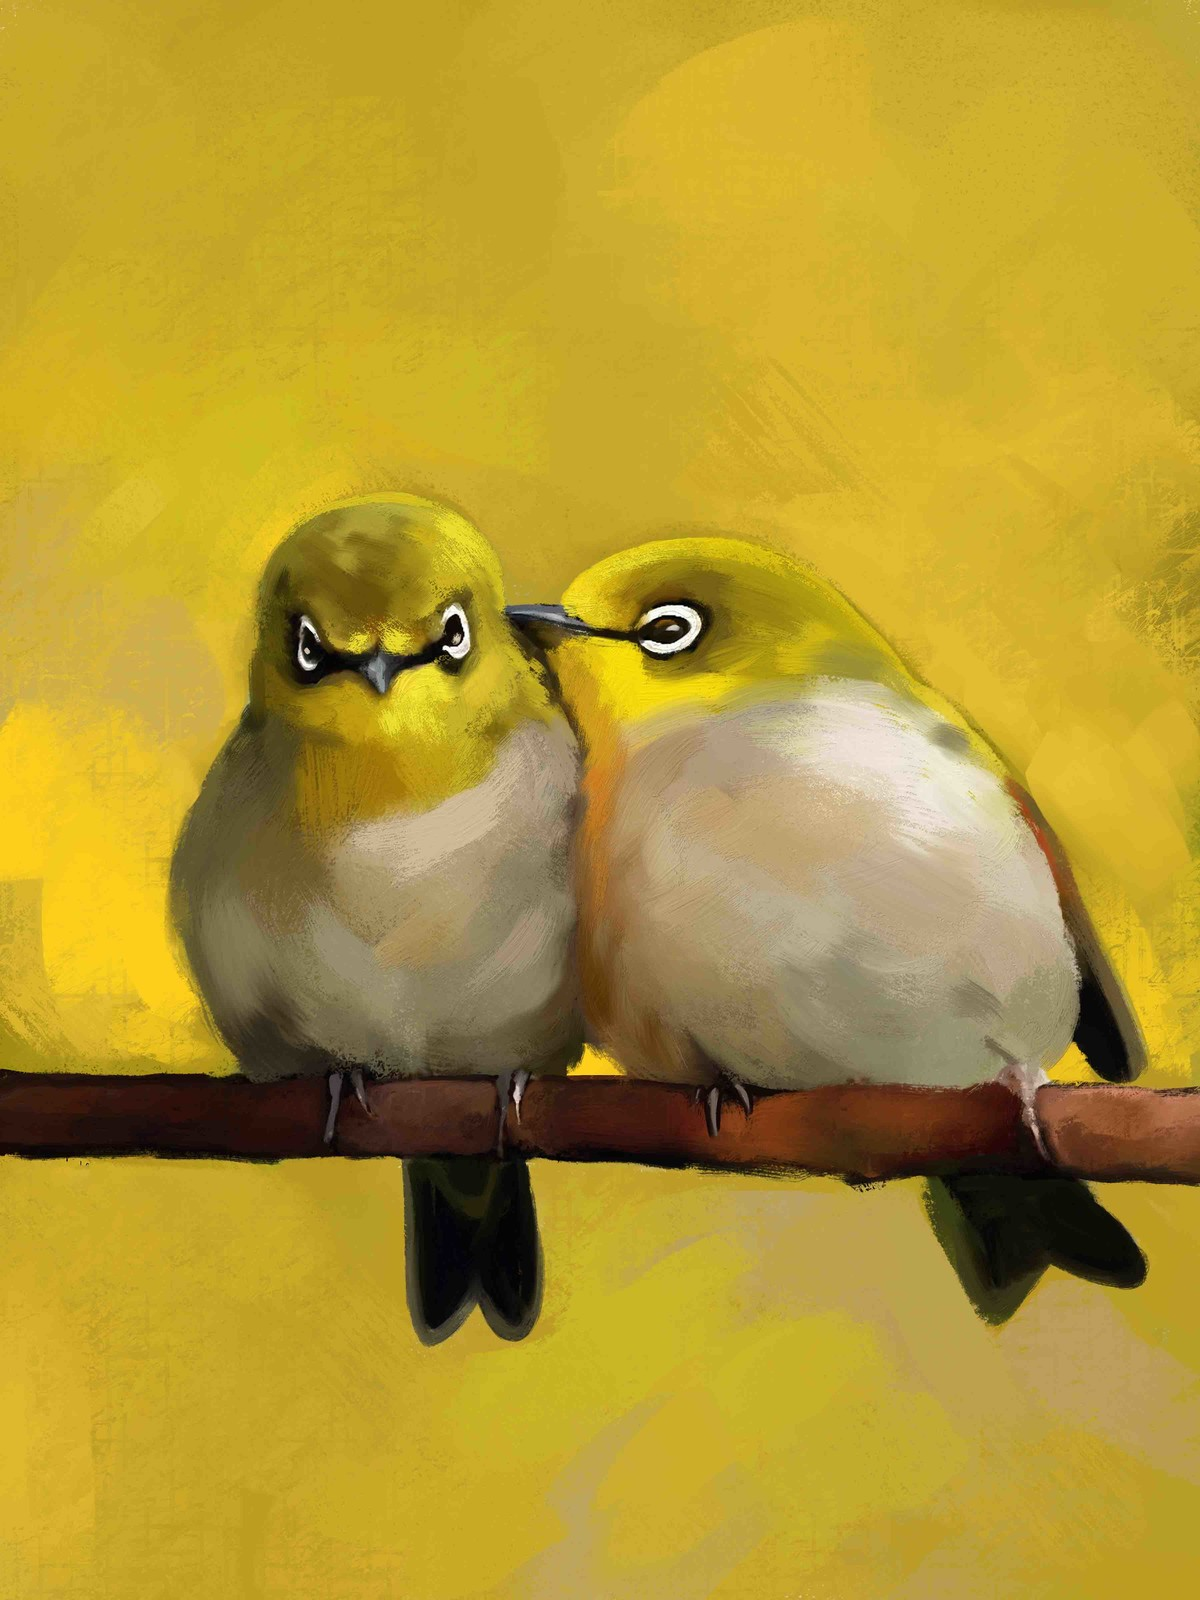 TWO BIRDS-42 Digital Print by The Print Studio,Expressionism